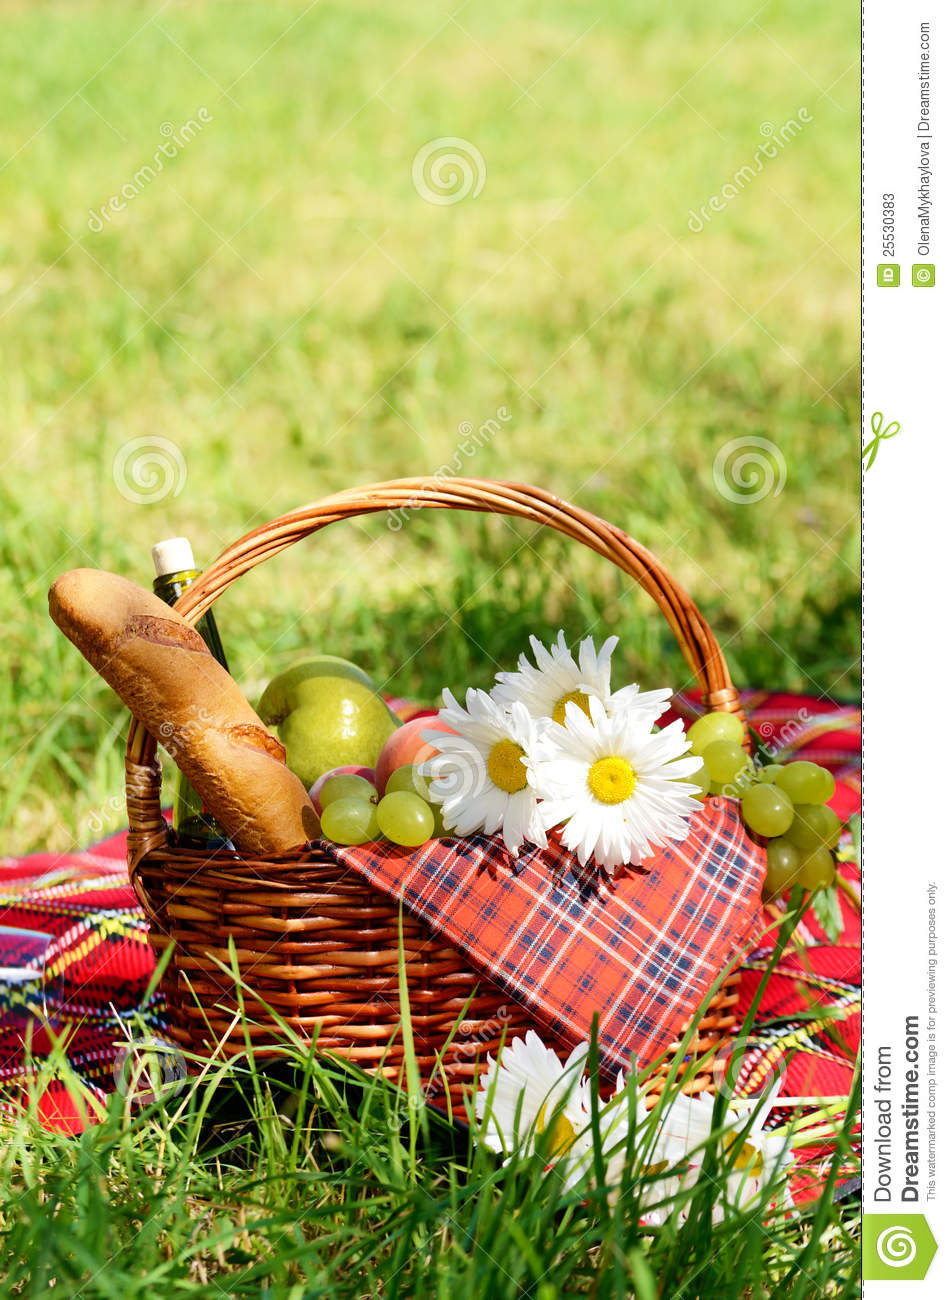 Picnic Basket Stock Image Image Of Healthy Colorful